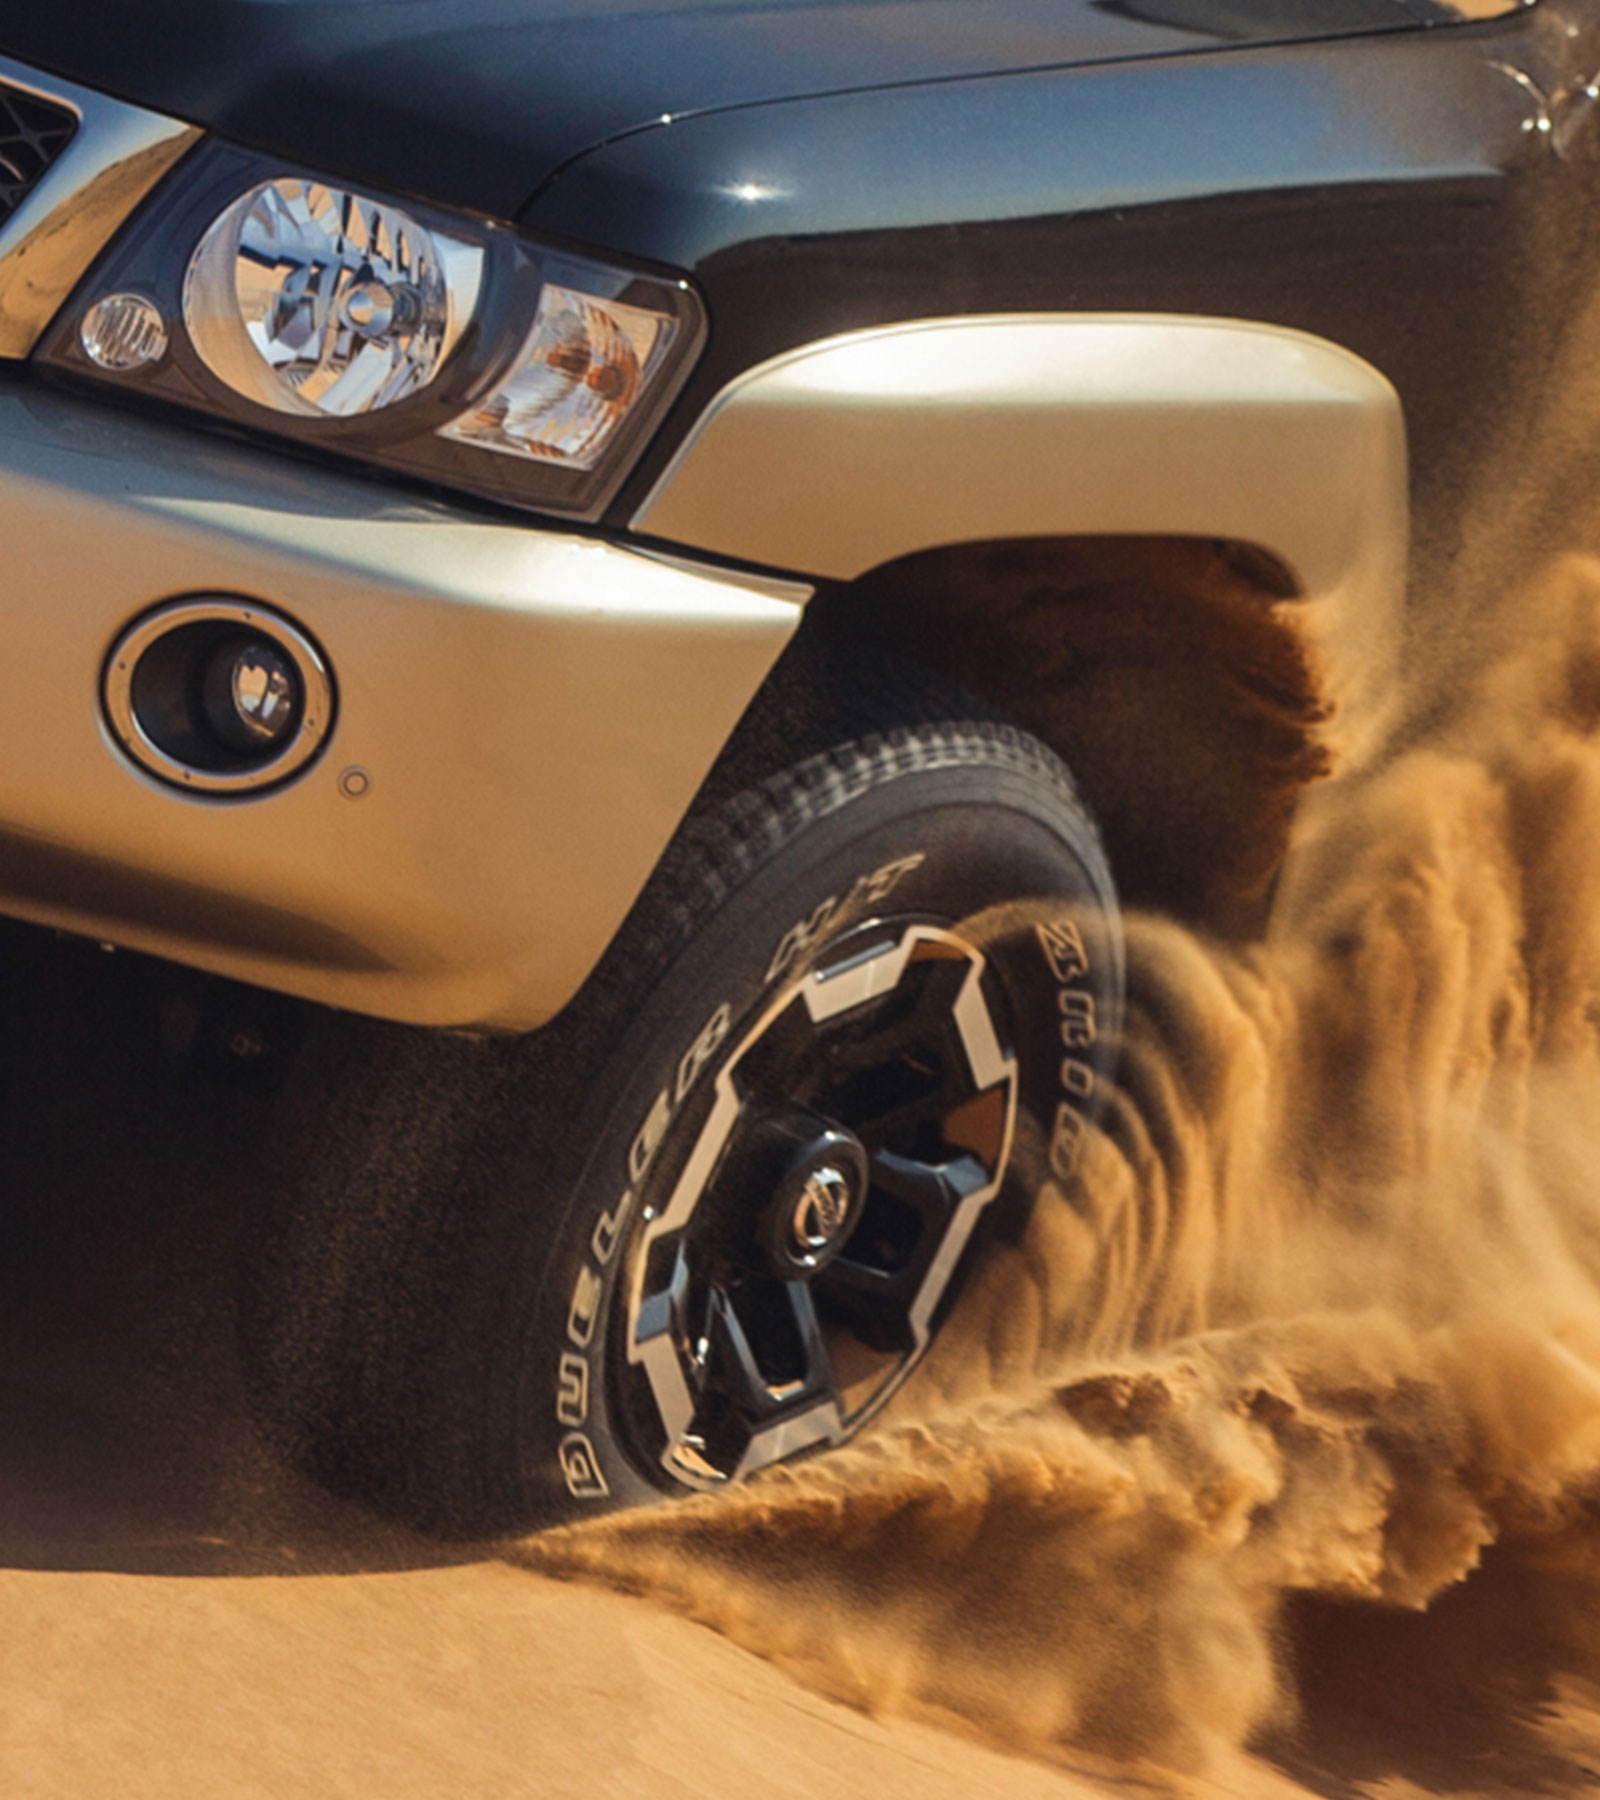 Patrol Super Safari in desert dune bashing